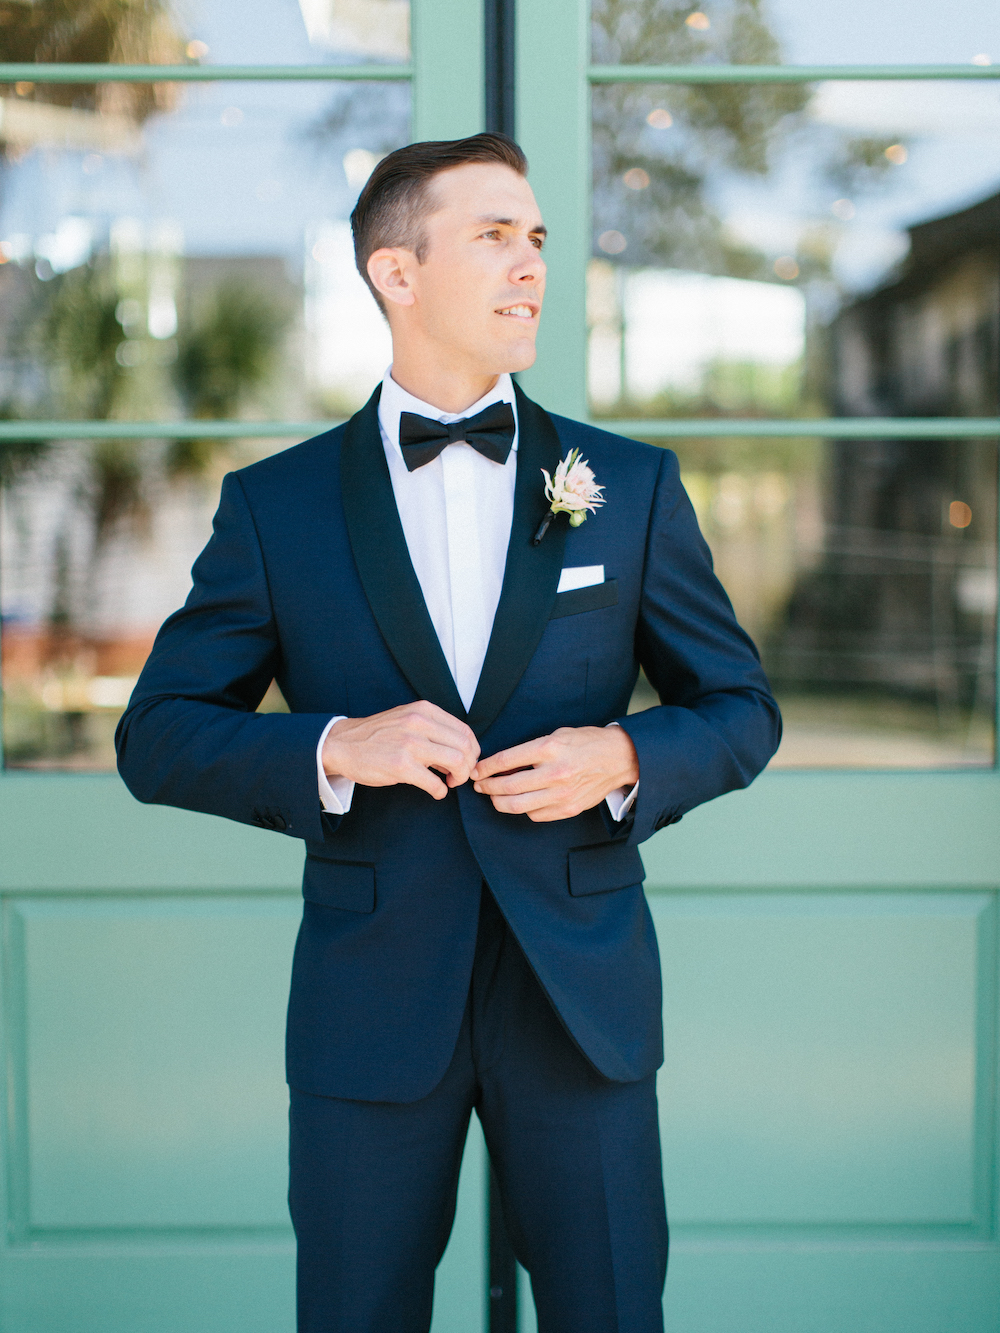 Man buttons his Classic Blue: Color Of The Year suit